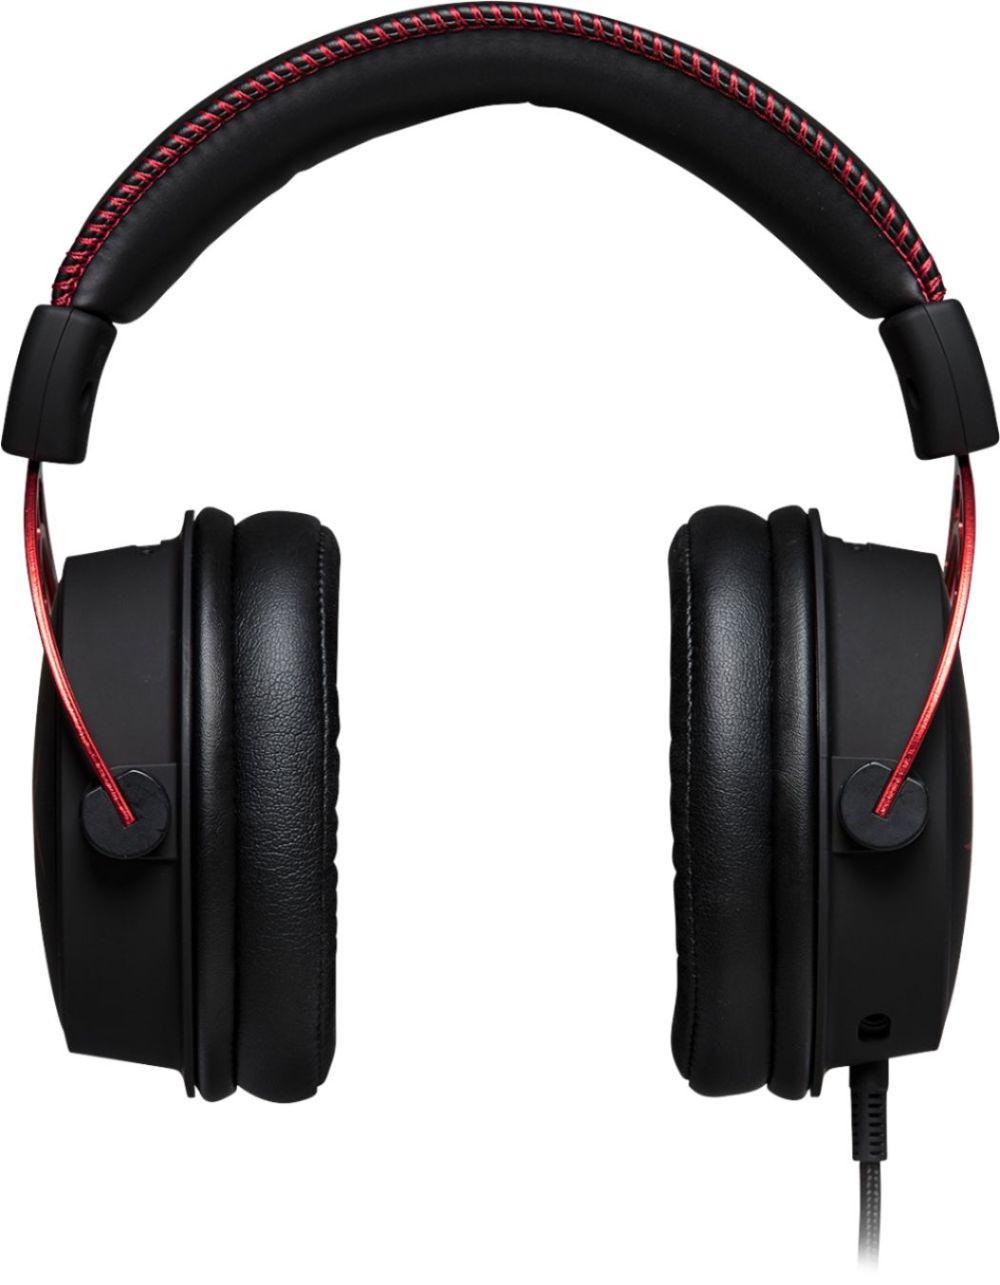 medium resolution of hyperx cloud alpha wired stereo gaming headset for pc ps4 xbox one gaming headset gaming headset microphone wiring diagram